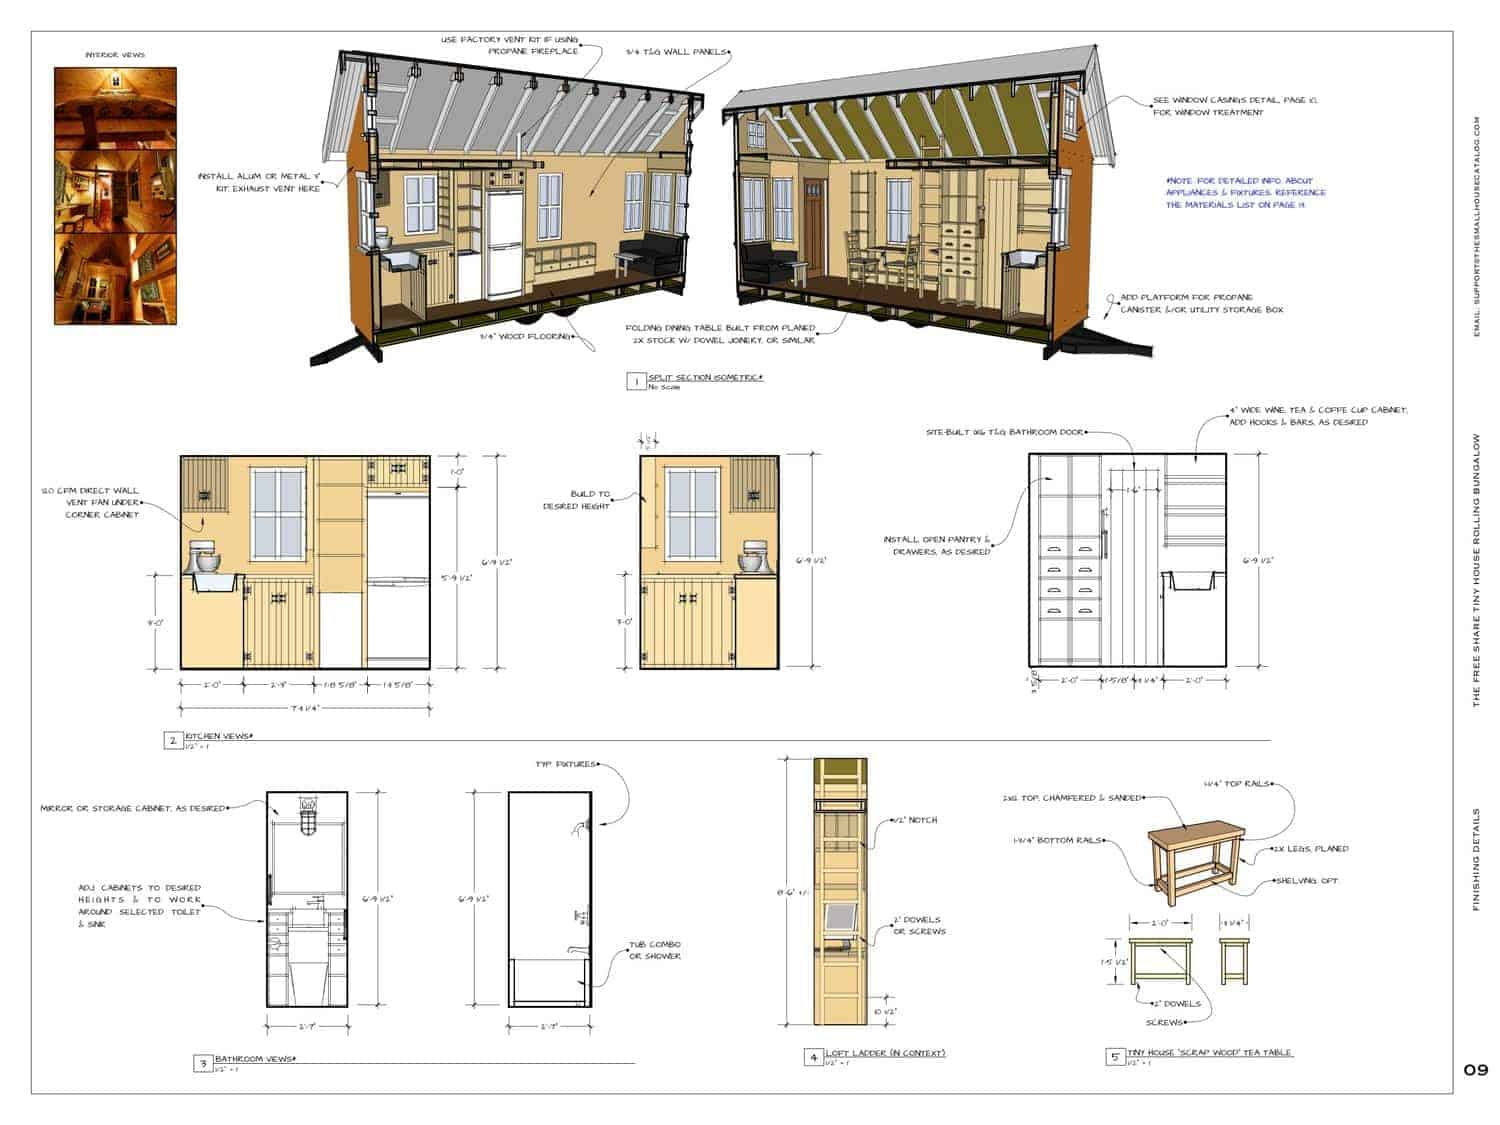 Get free plans to build this adorable tiny bungalow for Tiny bungalow house plans